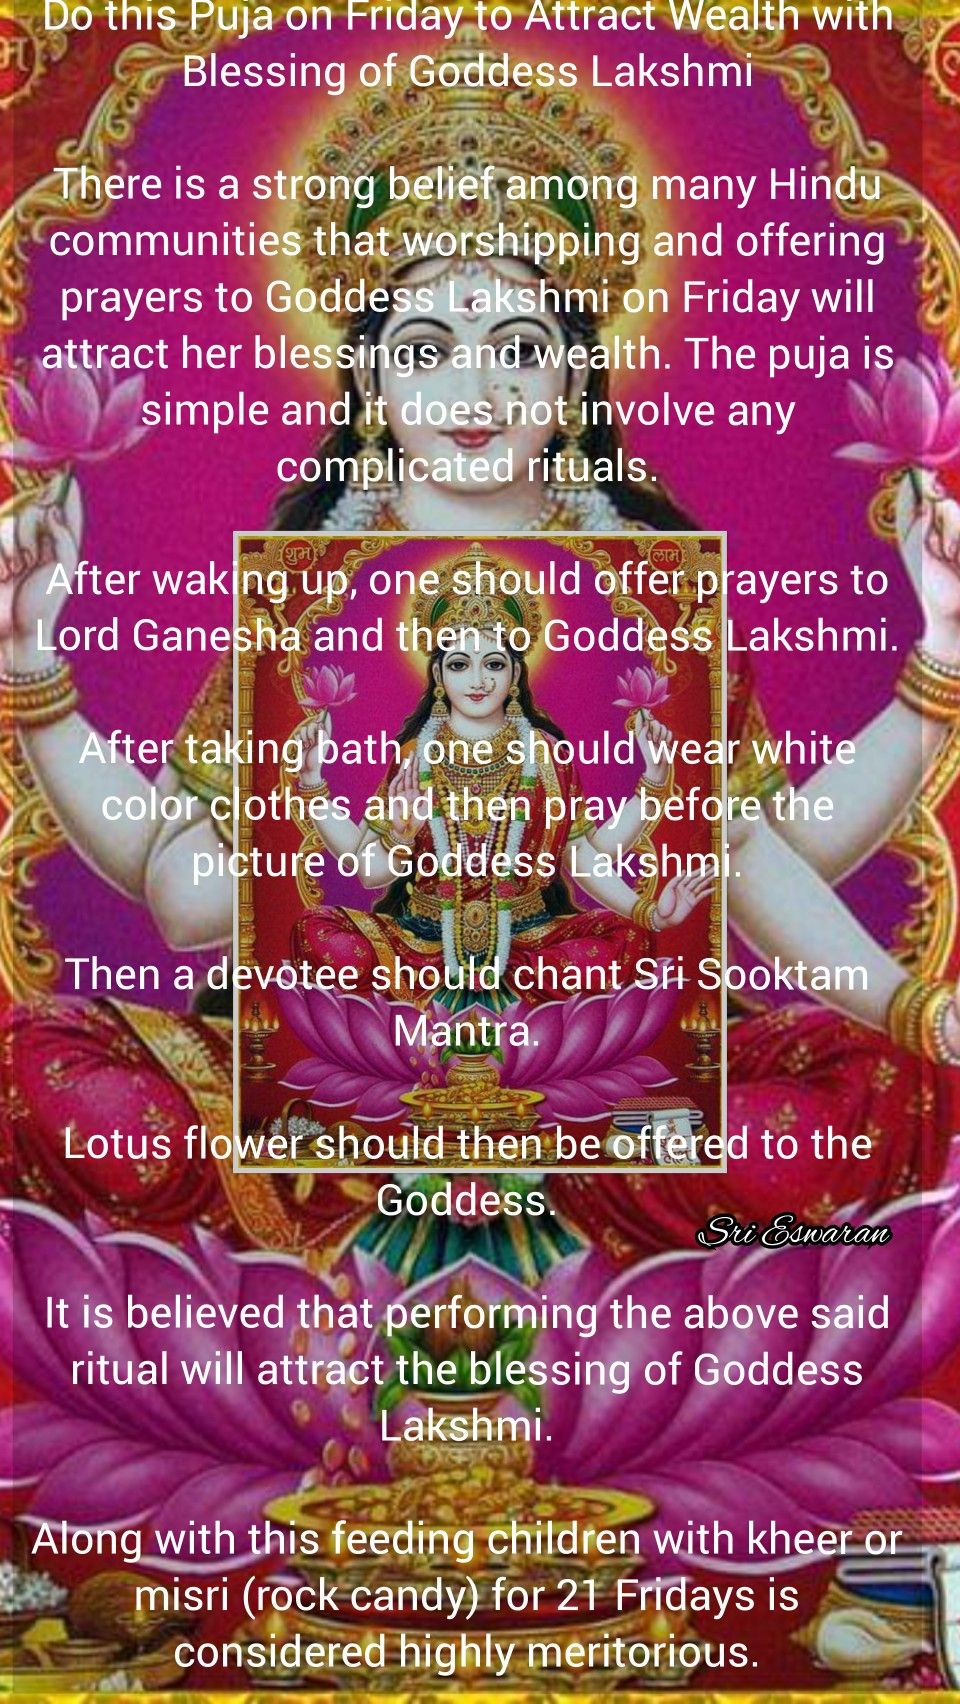 Do this Puja on Friday to Attract Wealth with Blessing of